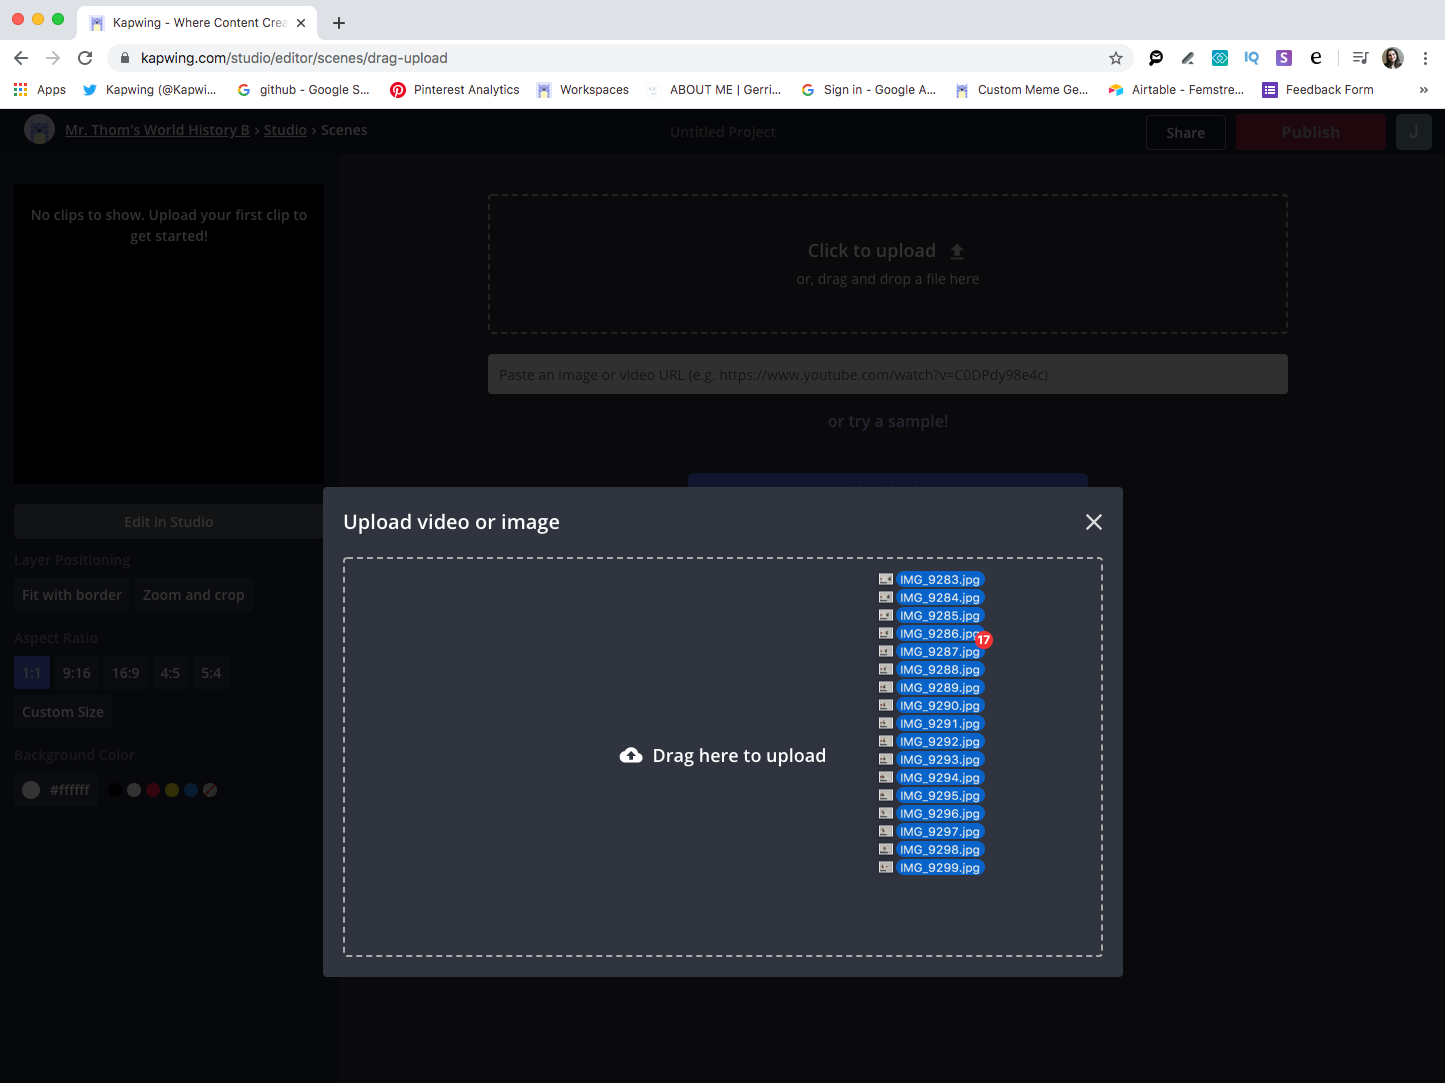 A screenshot showing how to upload multiple images into the Kapwing Studio at once.